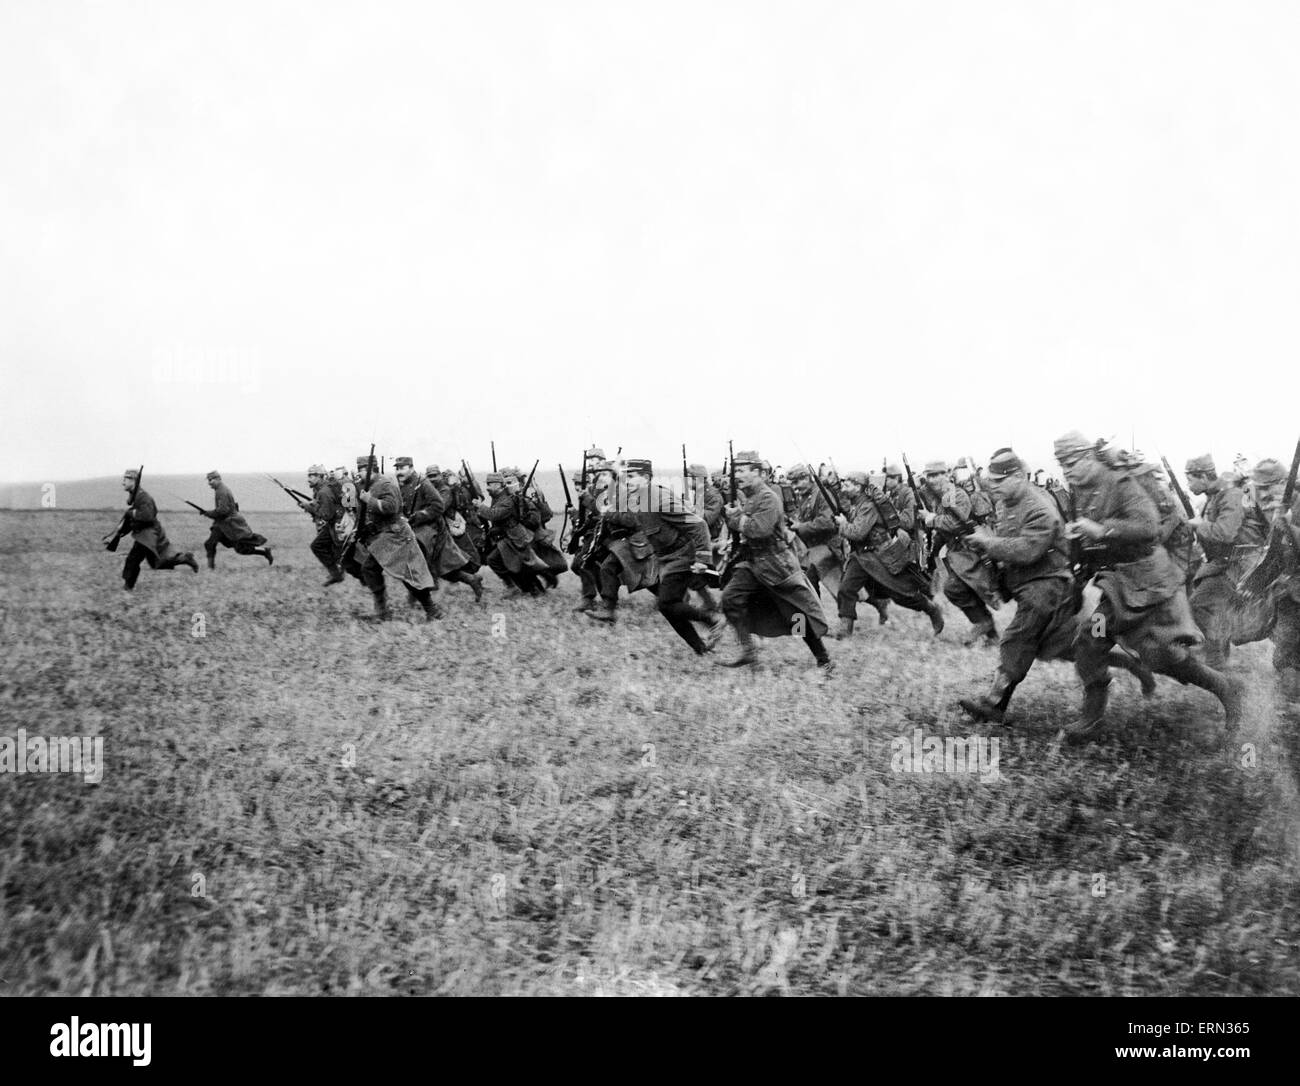 World War I French Soldiers charge across a field with rifles raised circa 1916 - Stock Image